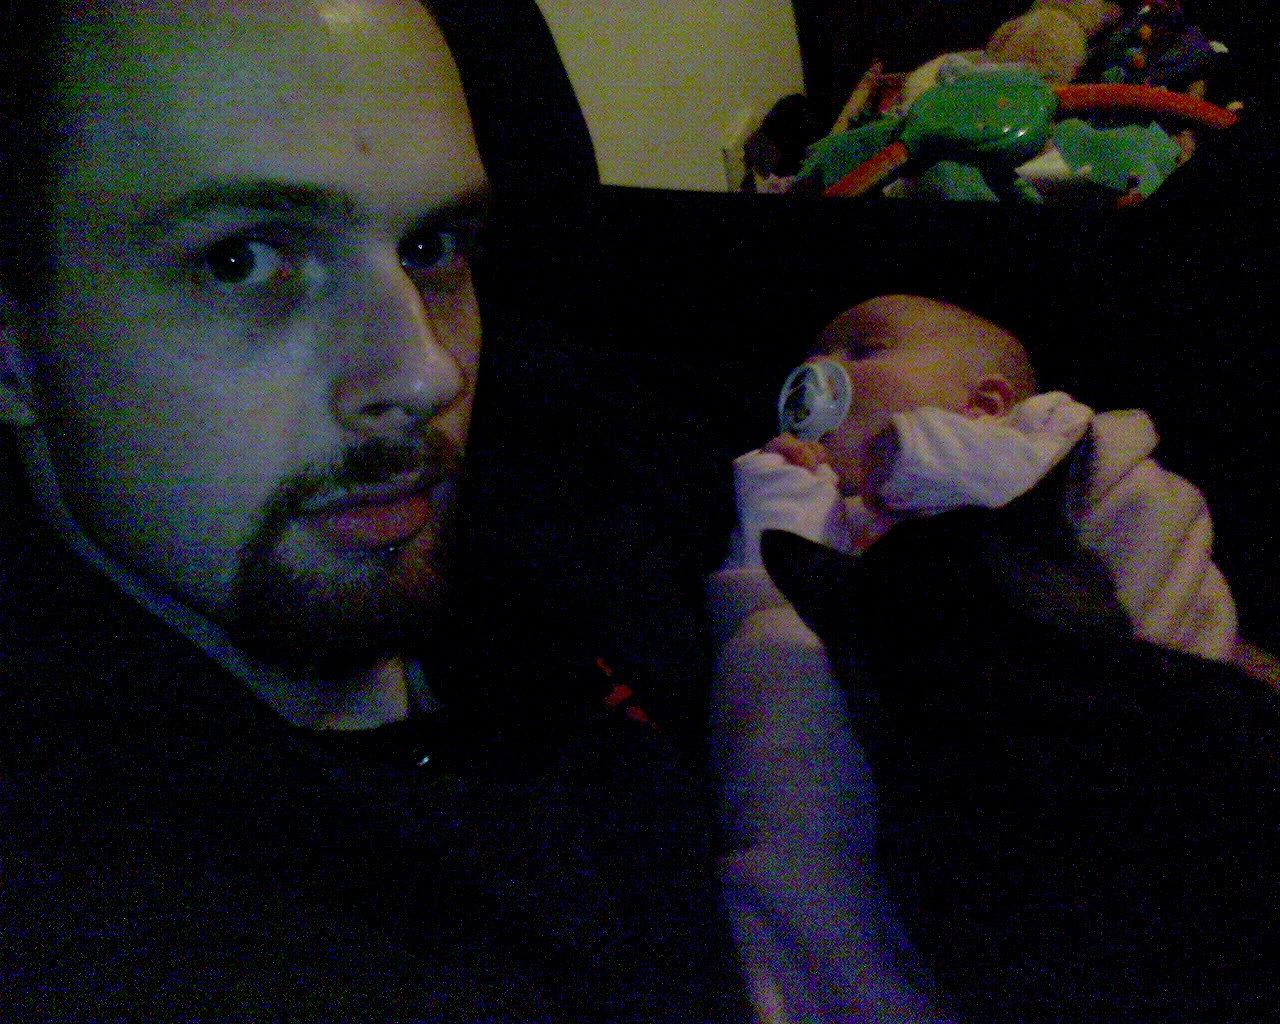 A very poor quality selfie of me, a white man with a goatee, with a sleeping baby in blankets on my lap, and a kitten on the blankets.